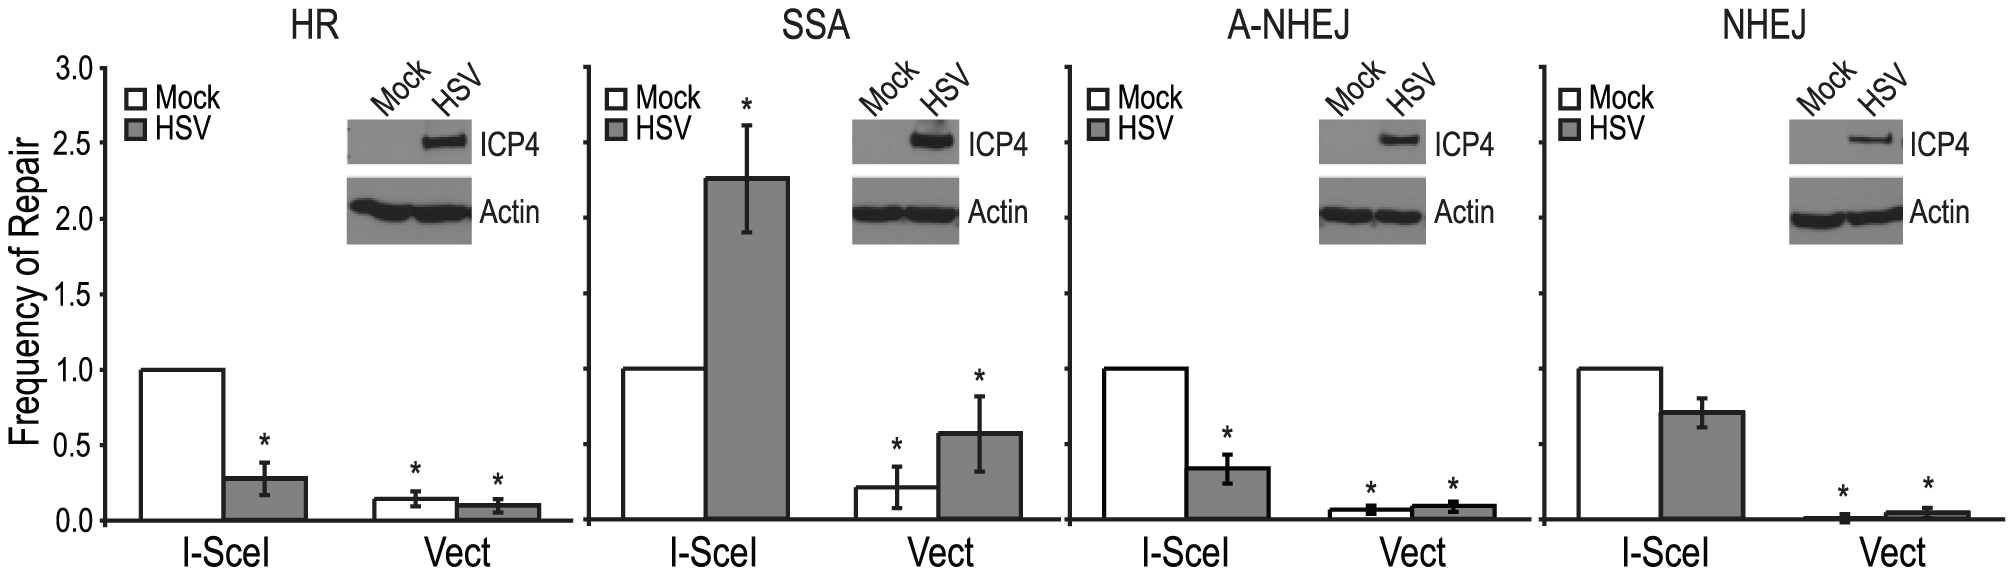 HSV infection increases SSA and inhibits HR, A-NHEJ and NHEJ.